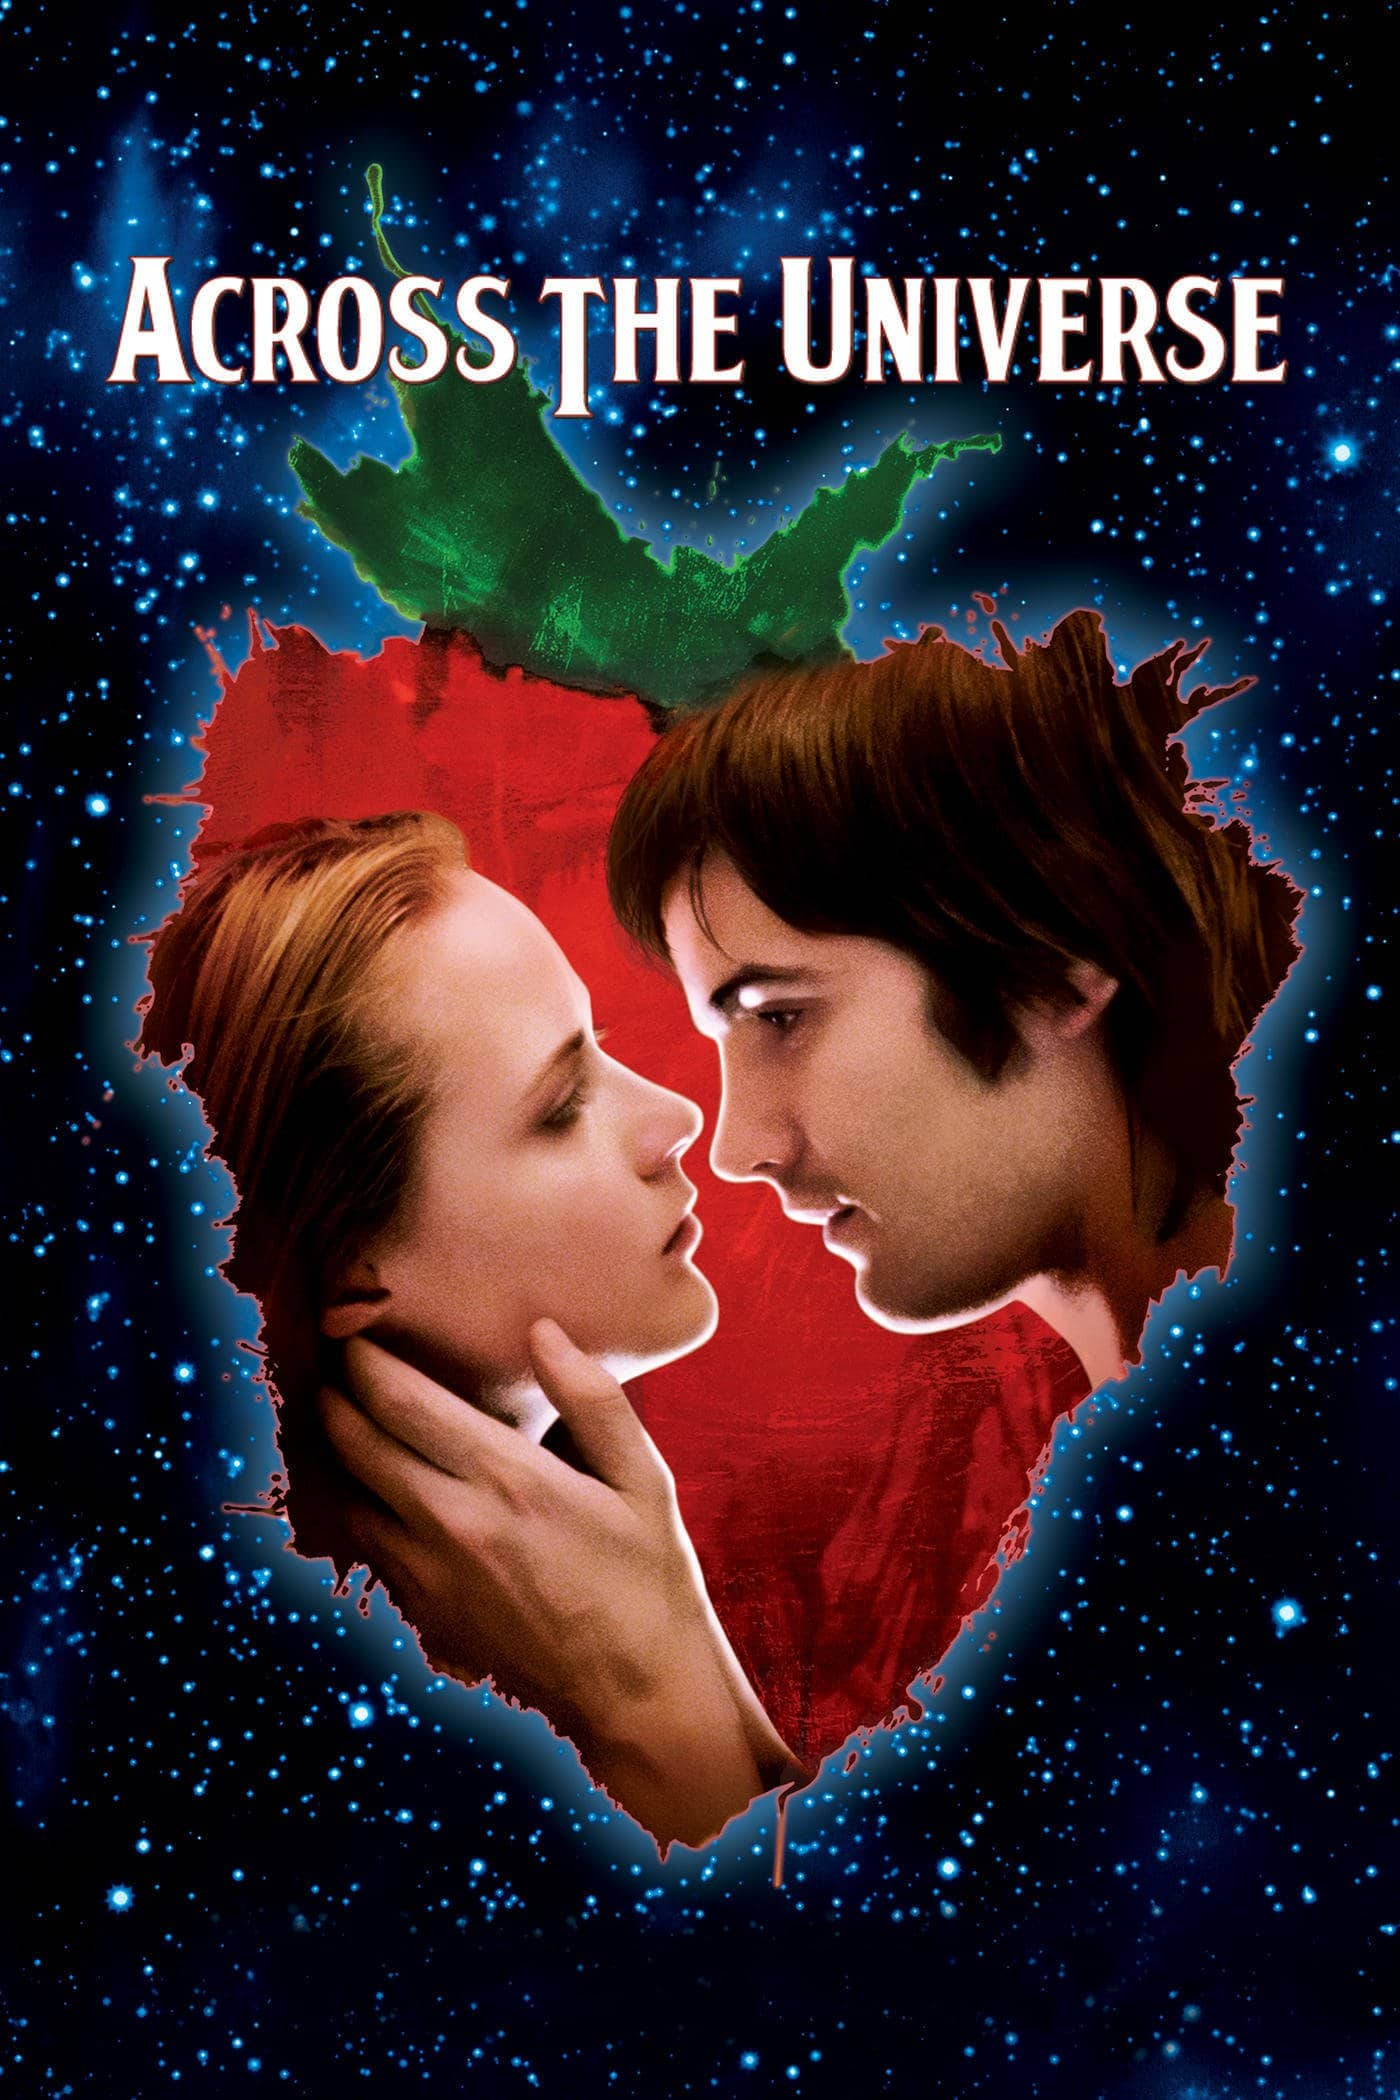 Across the Universe, 2007